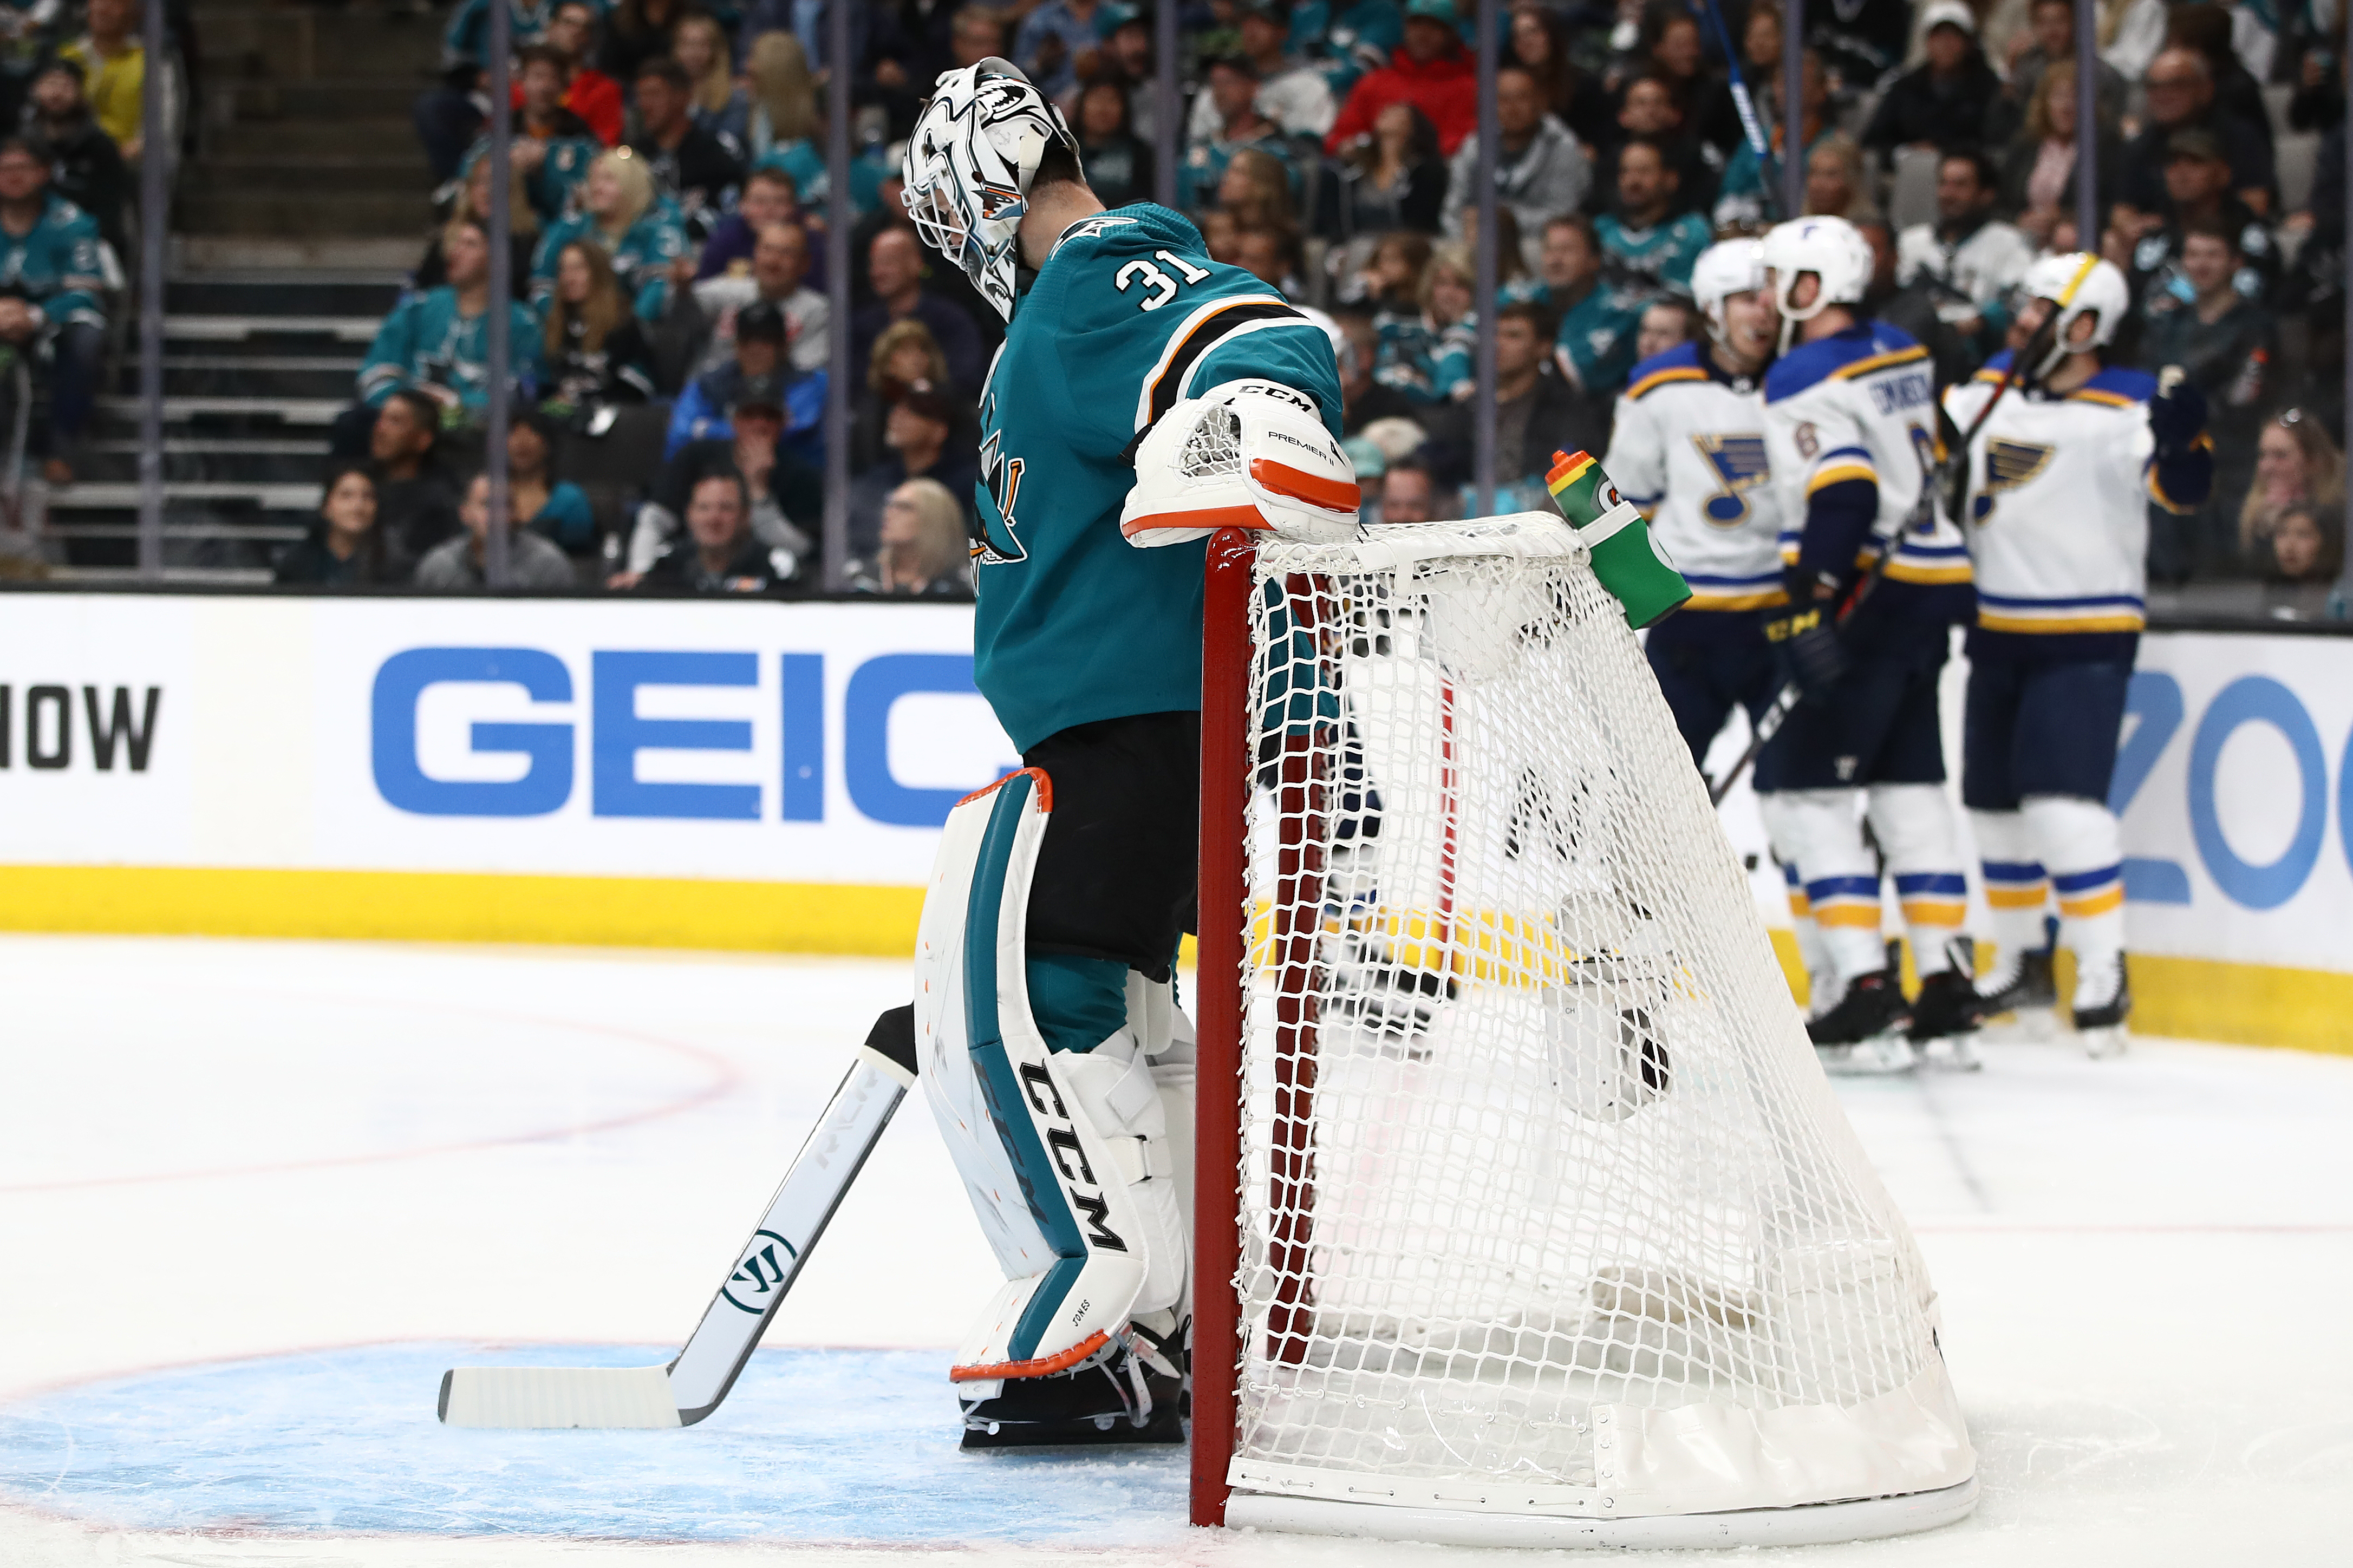 Martin Jones of the San Jose Sharks reacts after allowing a goal to Oskar Sundqvist of the St. Louis Blues in the first period of Game 5 of the Western Conference Final during the 2019 NHL Stanley Cup Playoffs at SAP Center on May 19, 2019 in San Jose, Ca